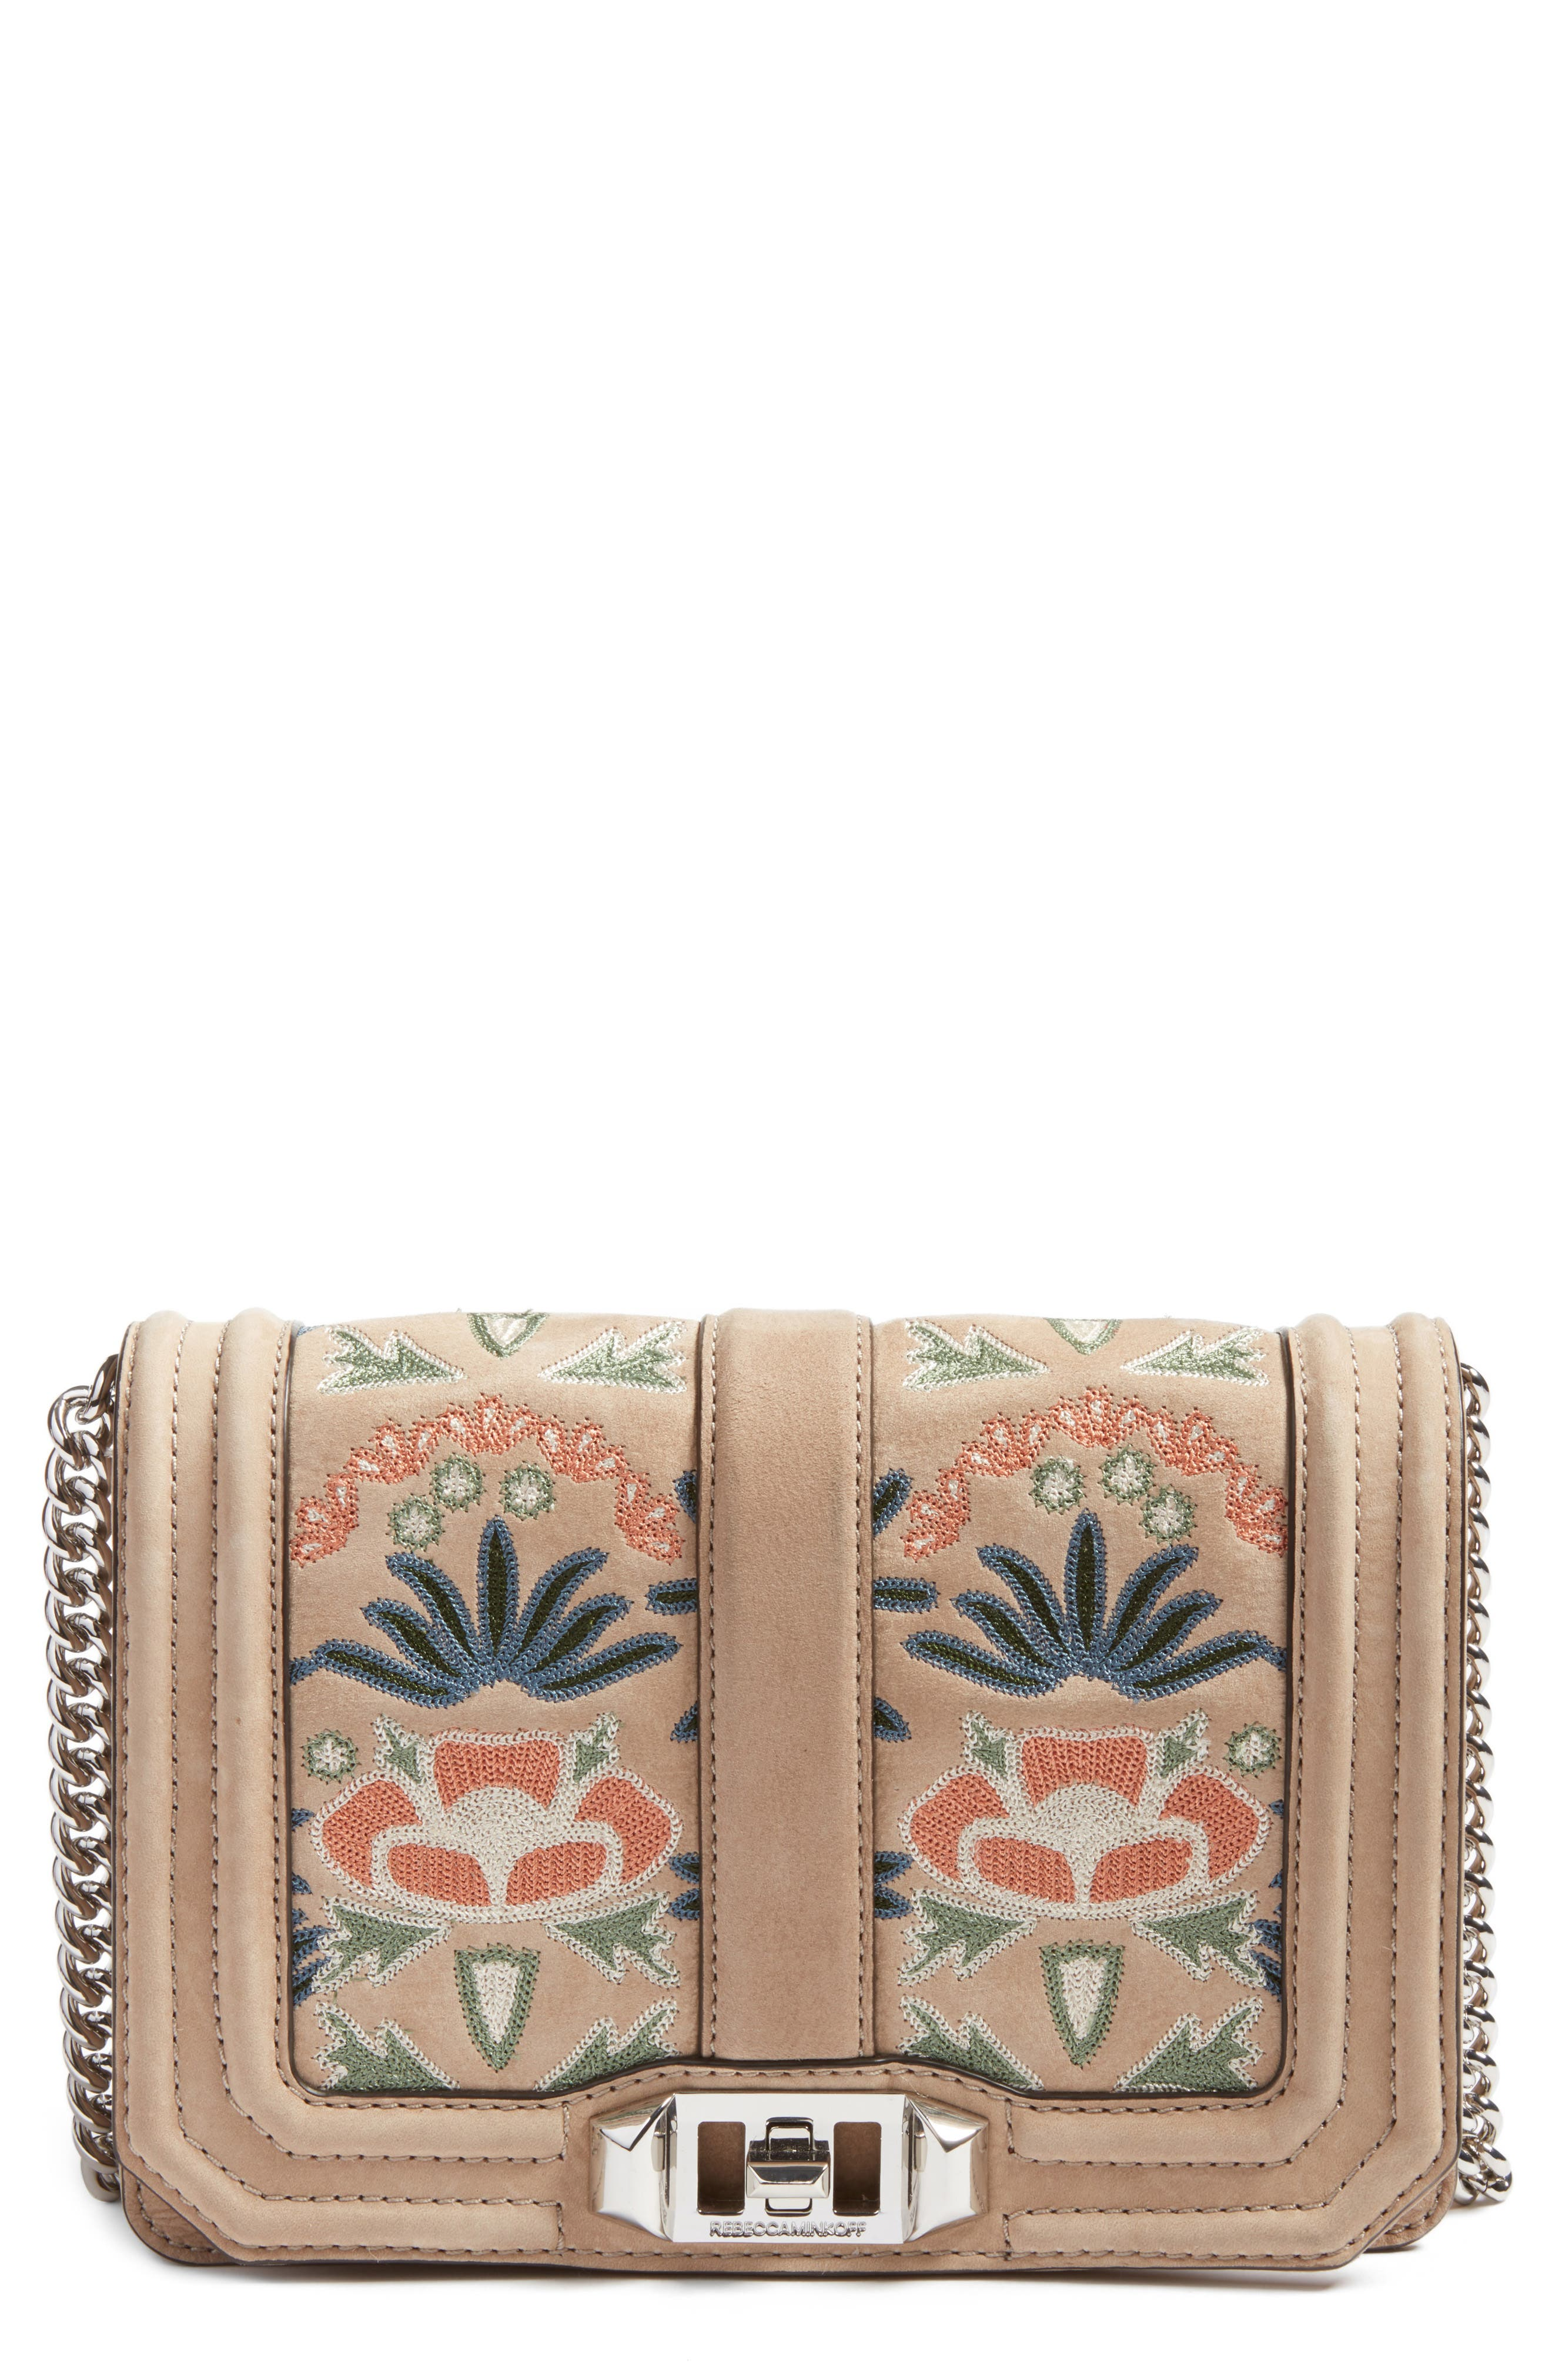 REBECCA MINKOFF Small Love Embroidered Nubuck Crossbody Bag, Main, color, 250